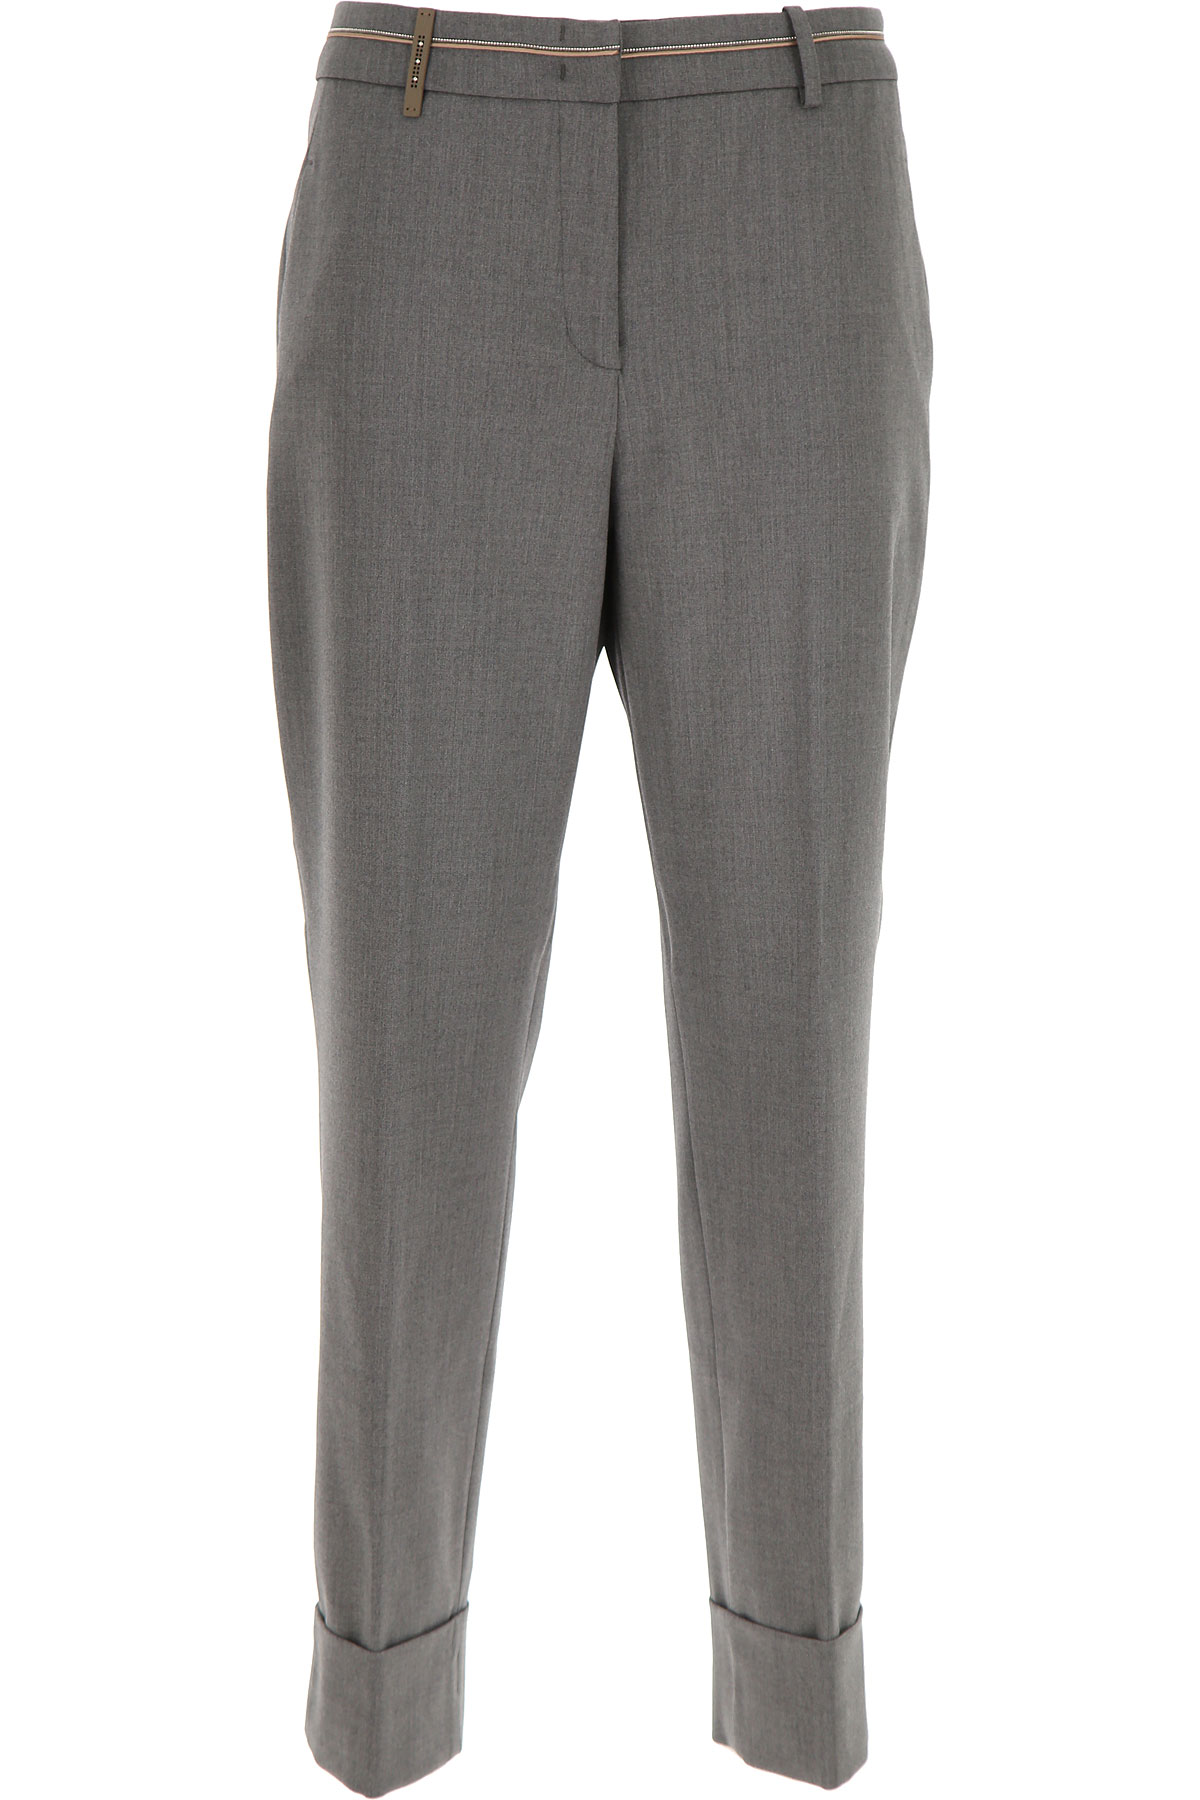 Peserico Pants for Women On Sale, Grey, Wool, 2019, 26 30 34 4